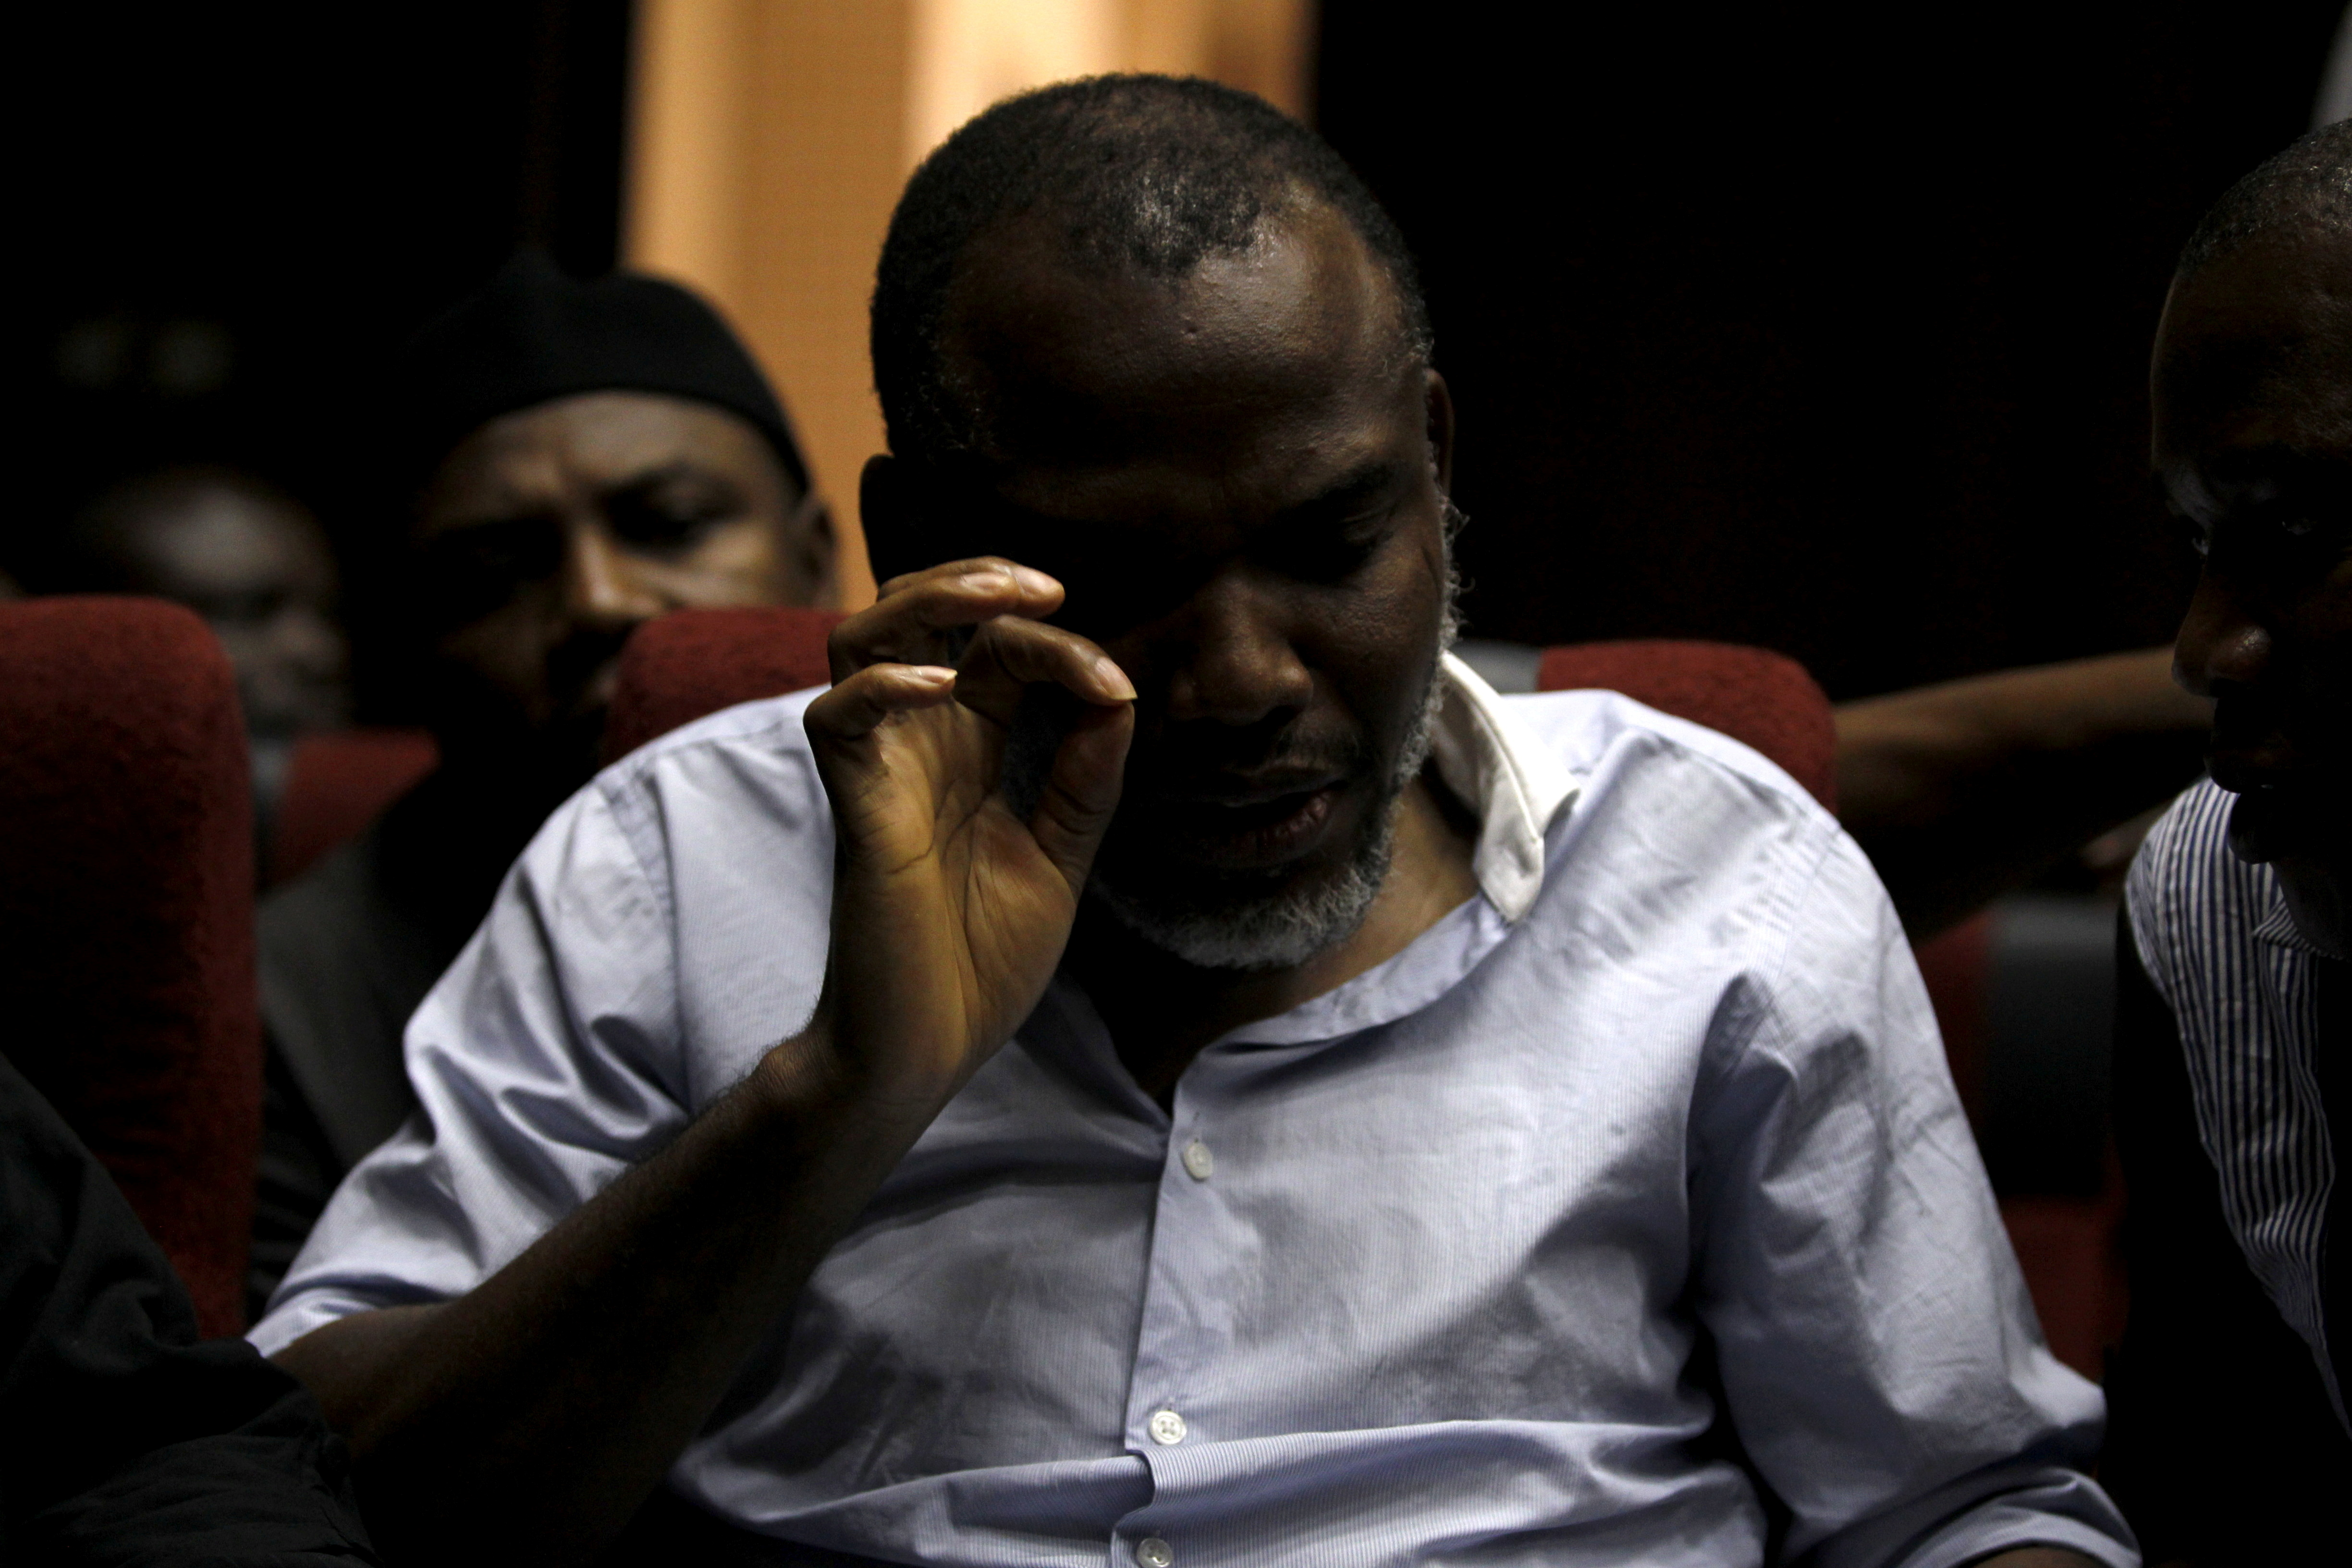 Indigenous People of Biafra (IPOB) leader Nnamdi Kanu is seen at the Federal High Court in Abuja, Nigeria, January 20, 2016.  REUTERS/Afolabi Sotunde/File Photo